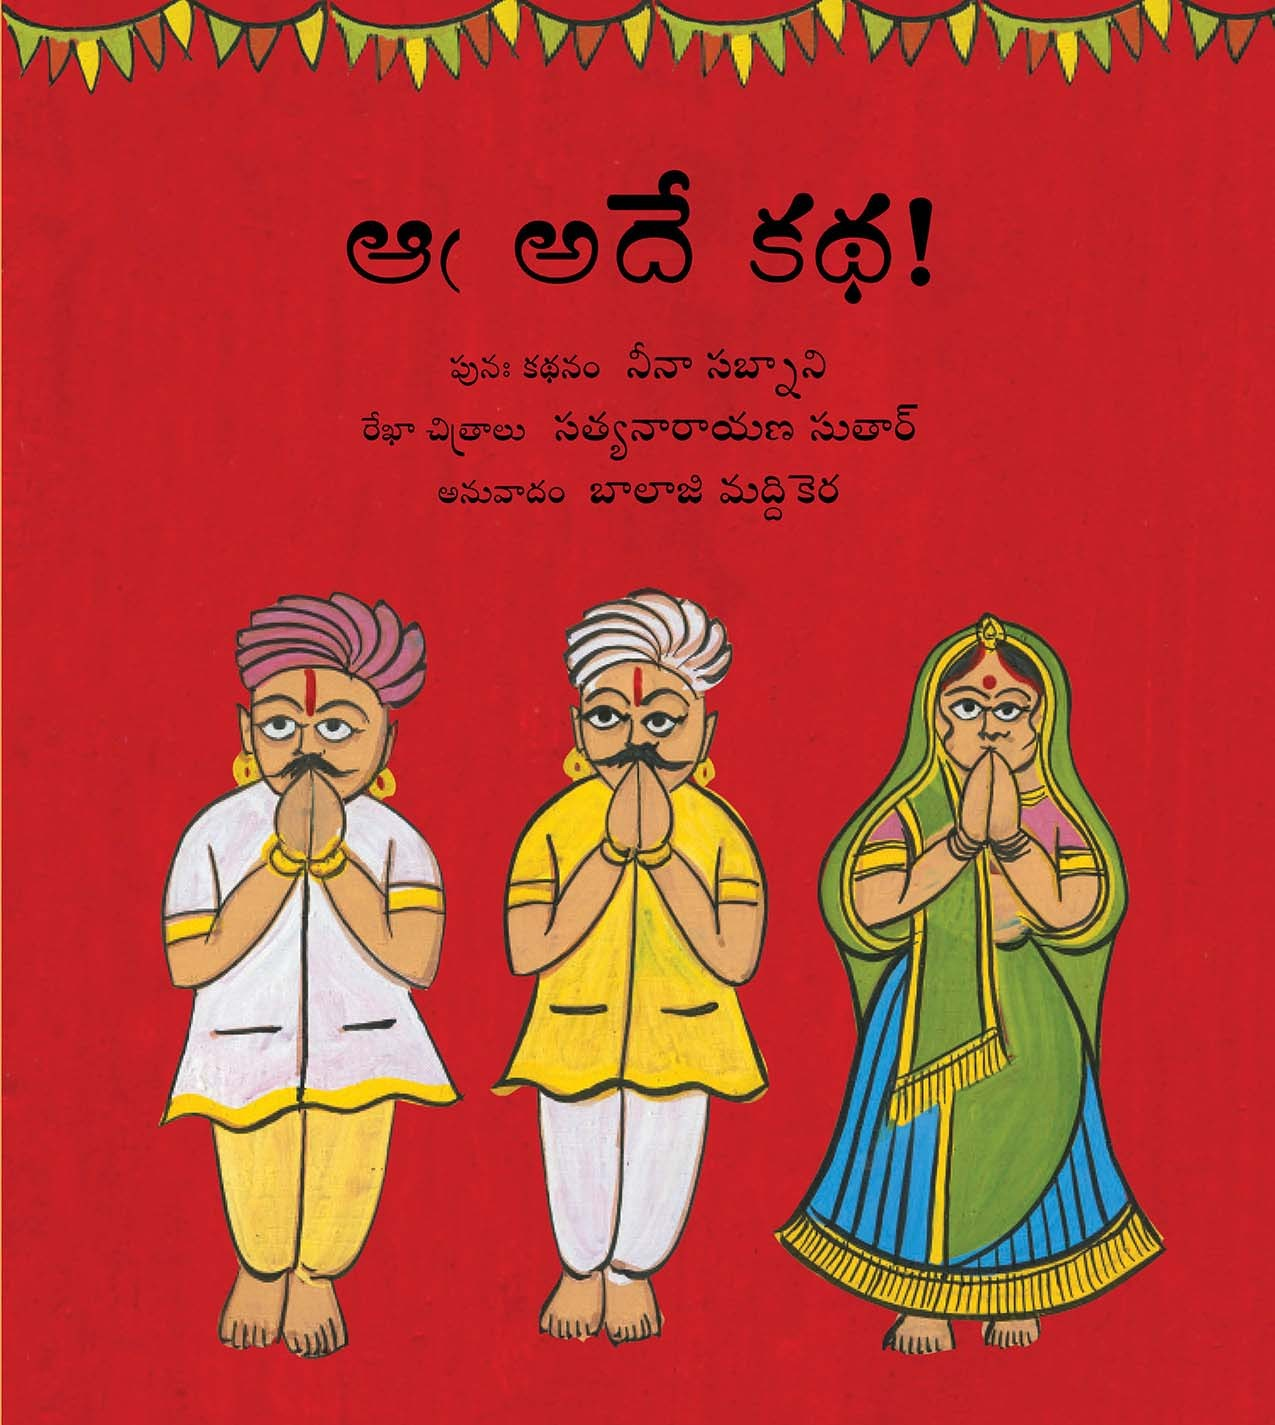 It's All The Same!/Aa Adey Katha! (Telugu)